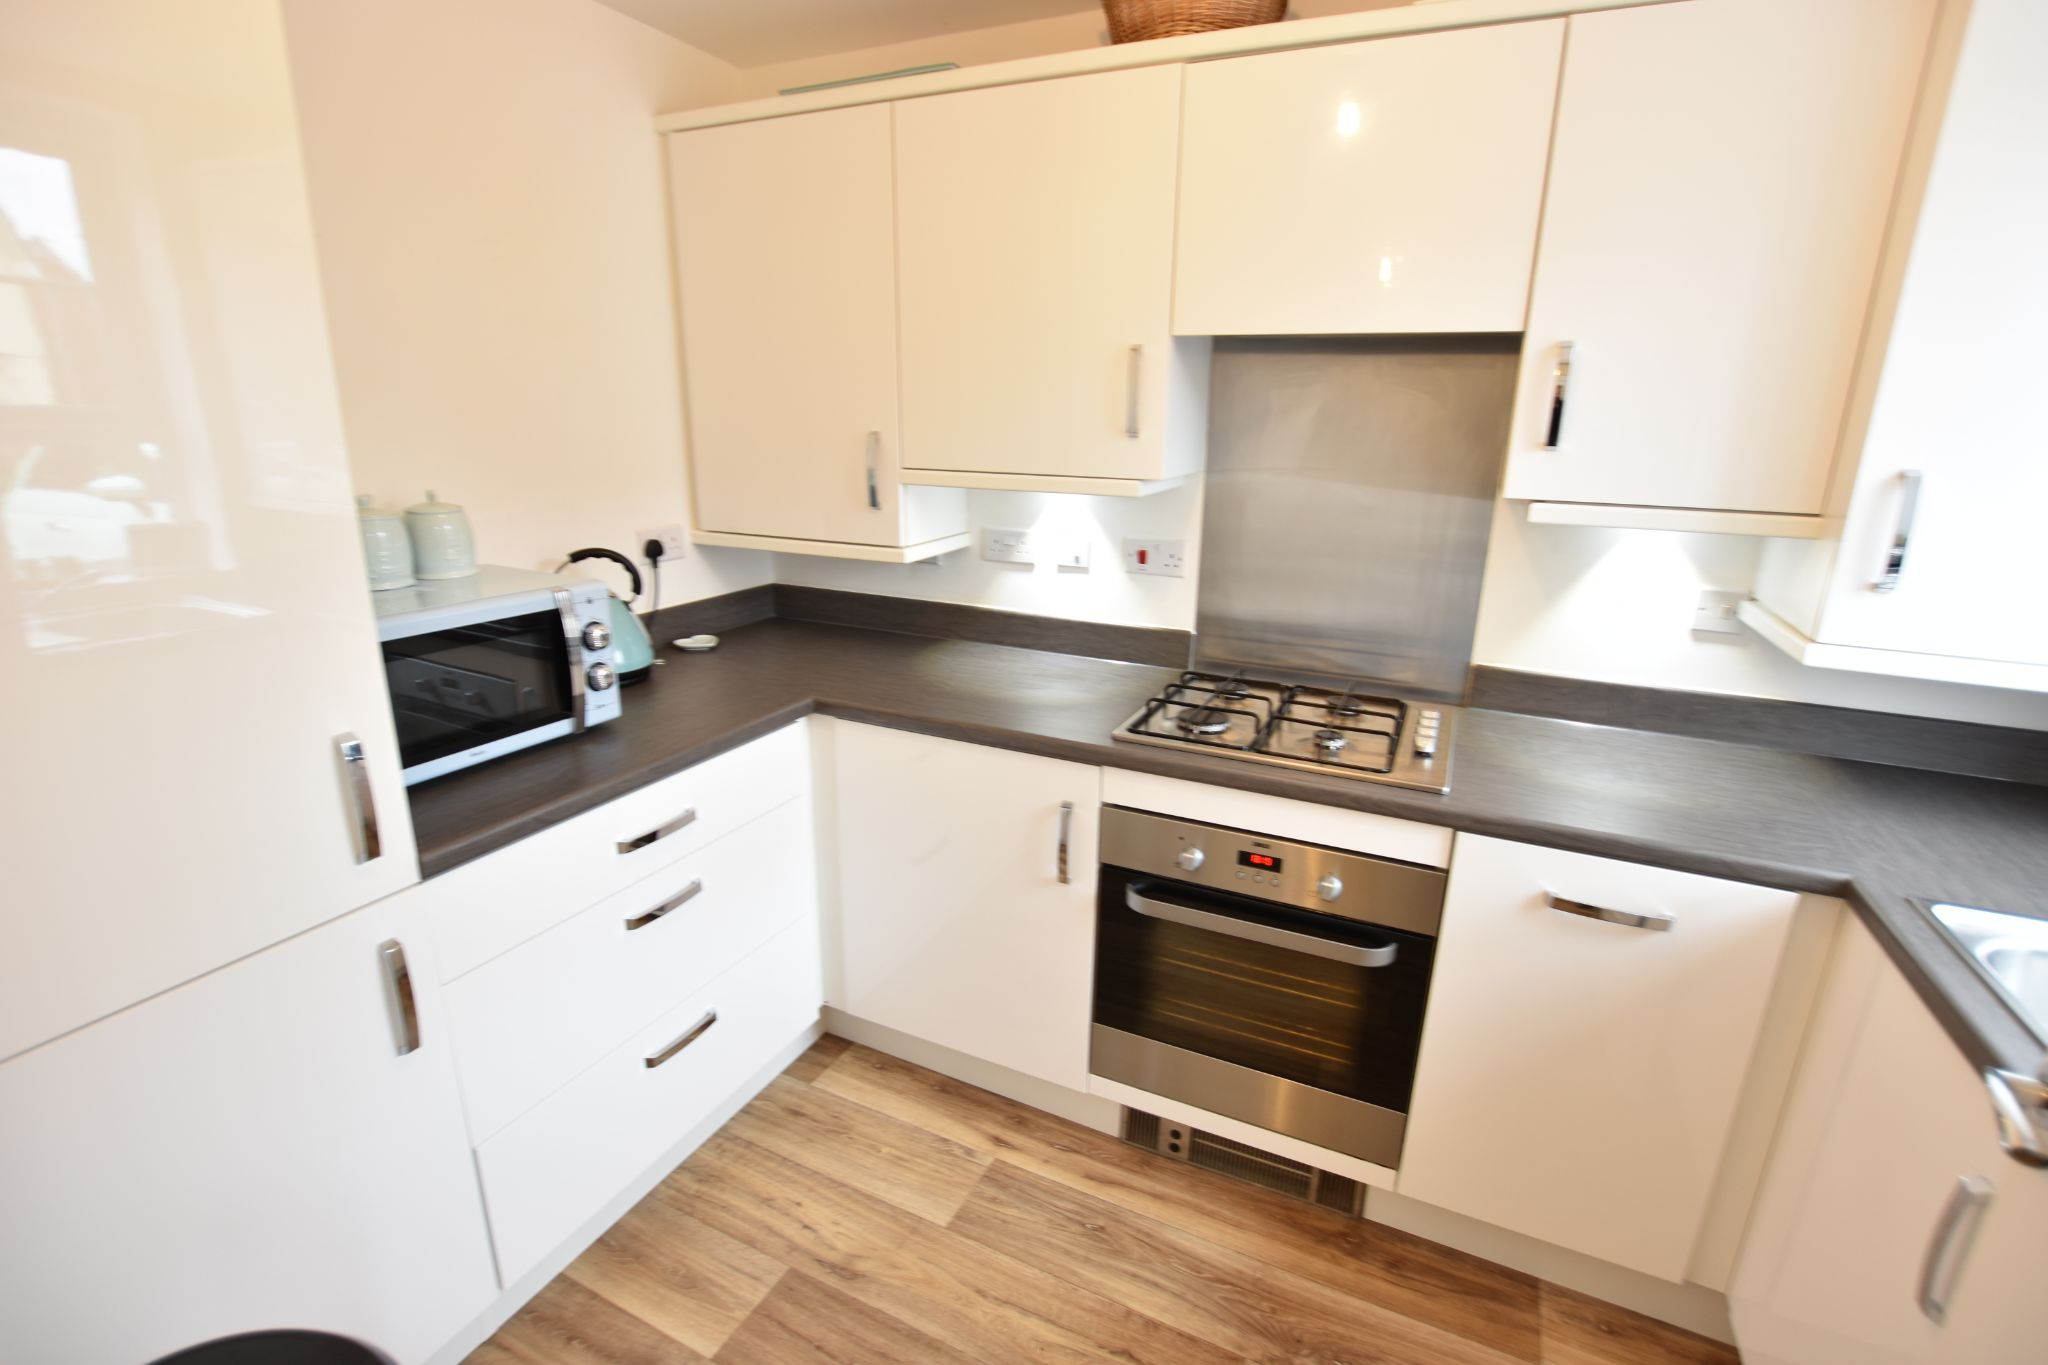 3 bedroom mid terraced house For Sale in Preston - Kitchen